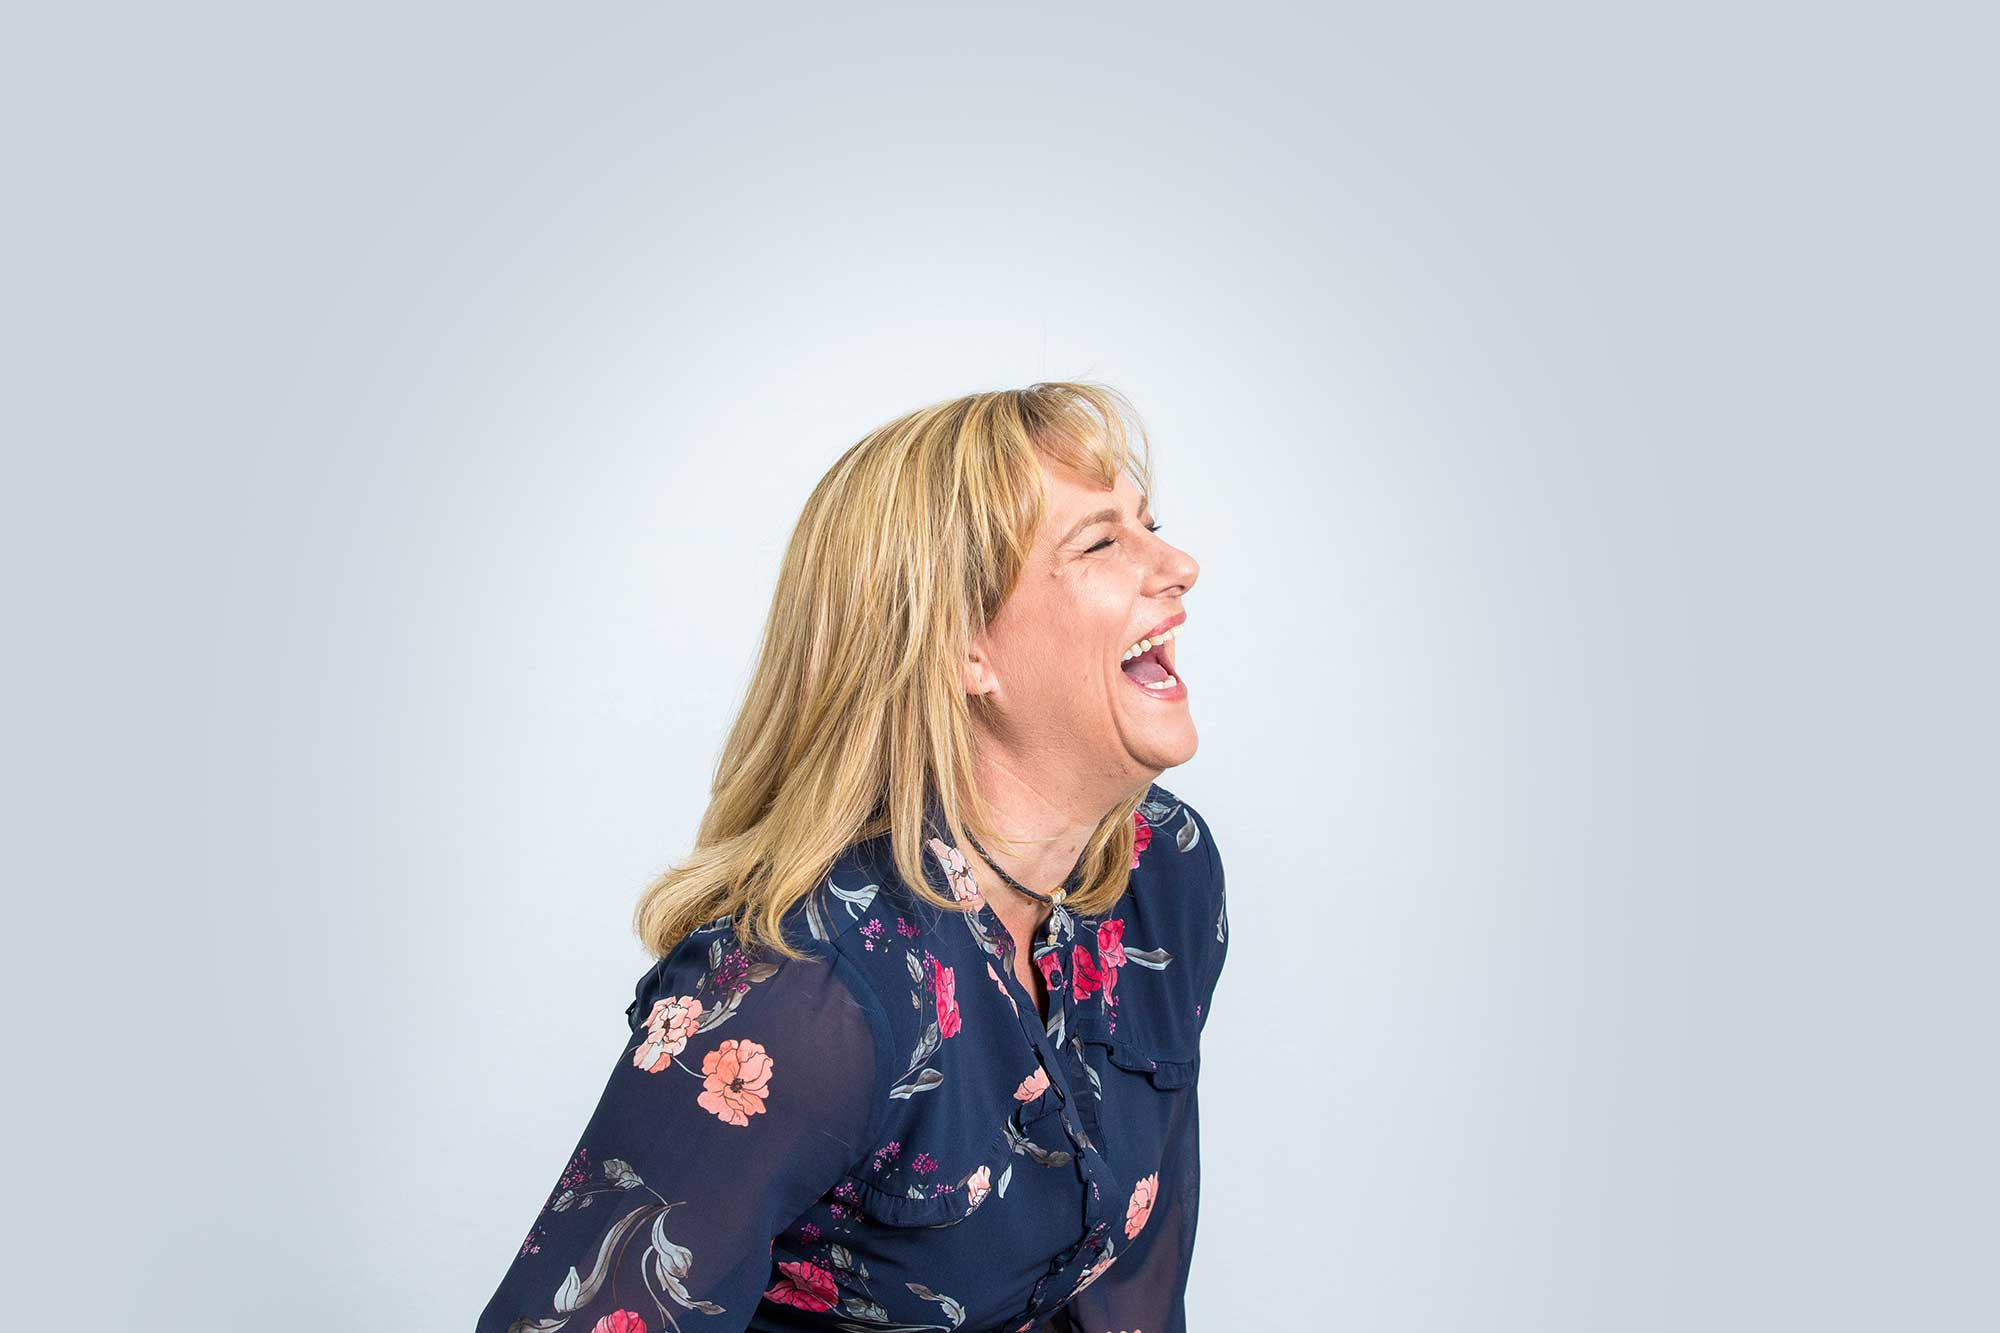 A lady in a navy shirt with a colourful floral pattern on it, laughs against an off white background